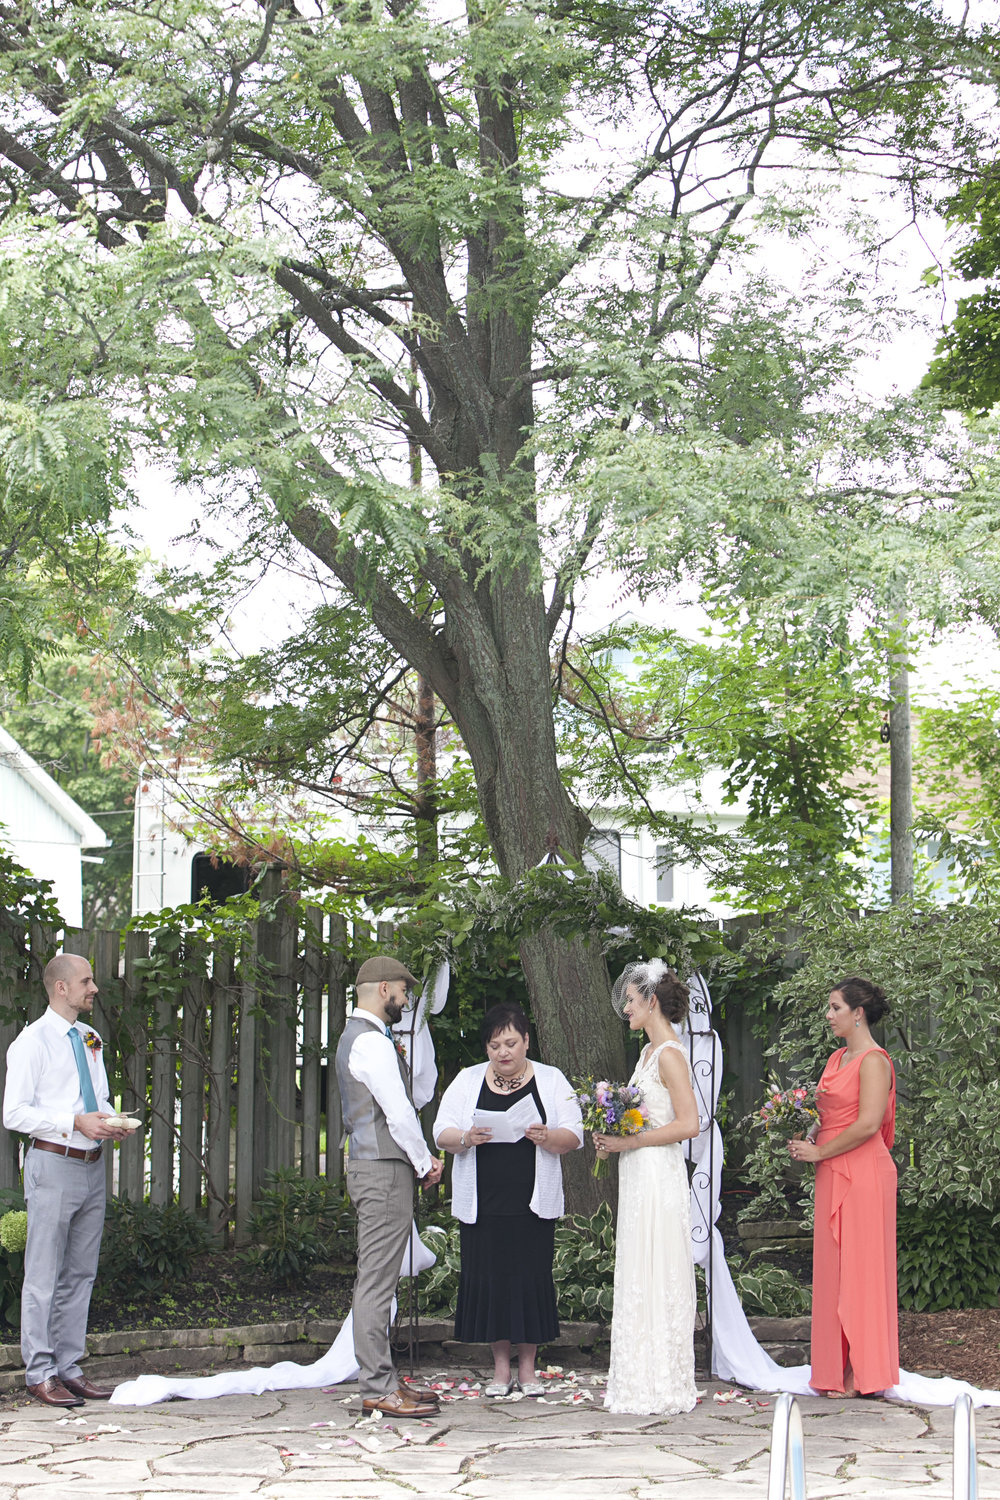 Wedding ceremony in Stratford Ontario